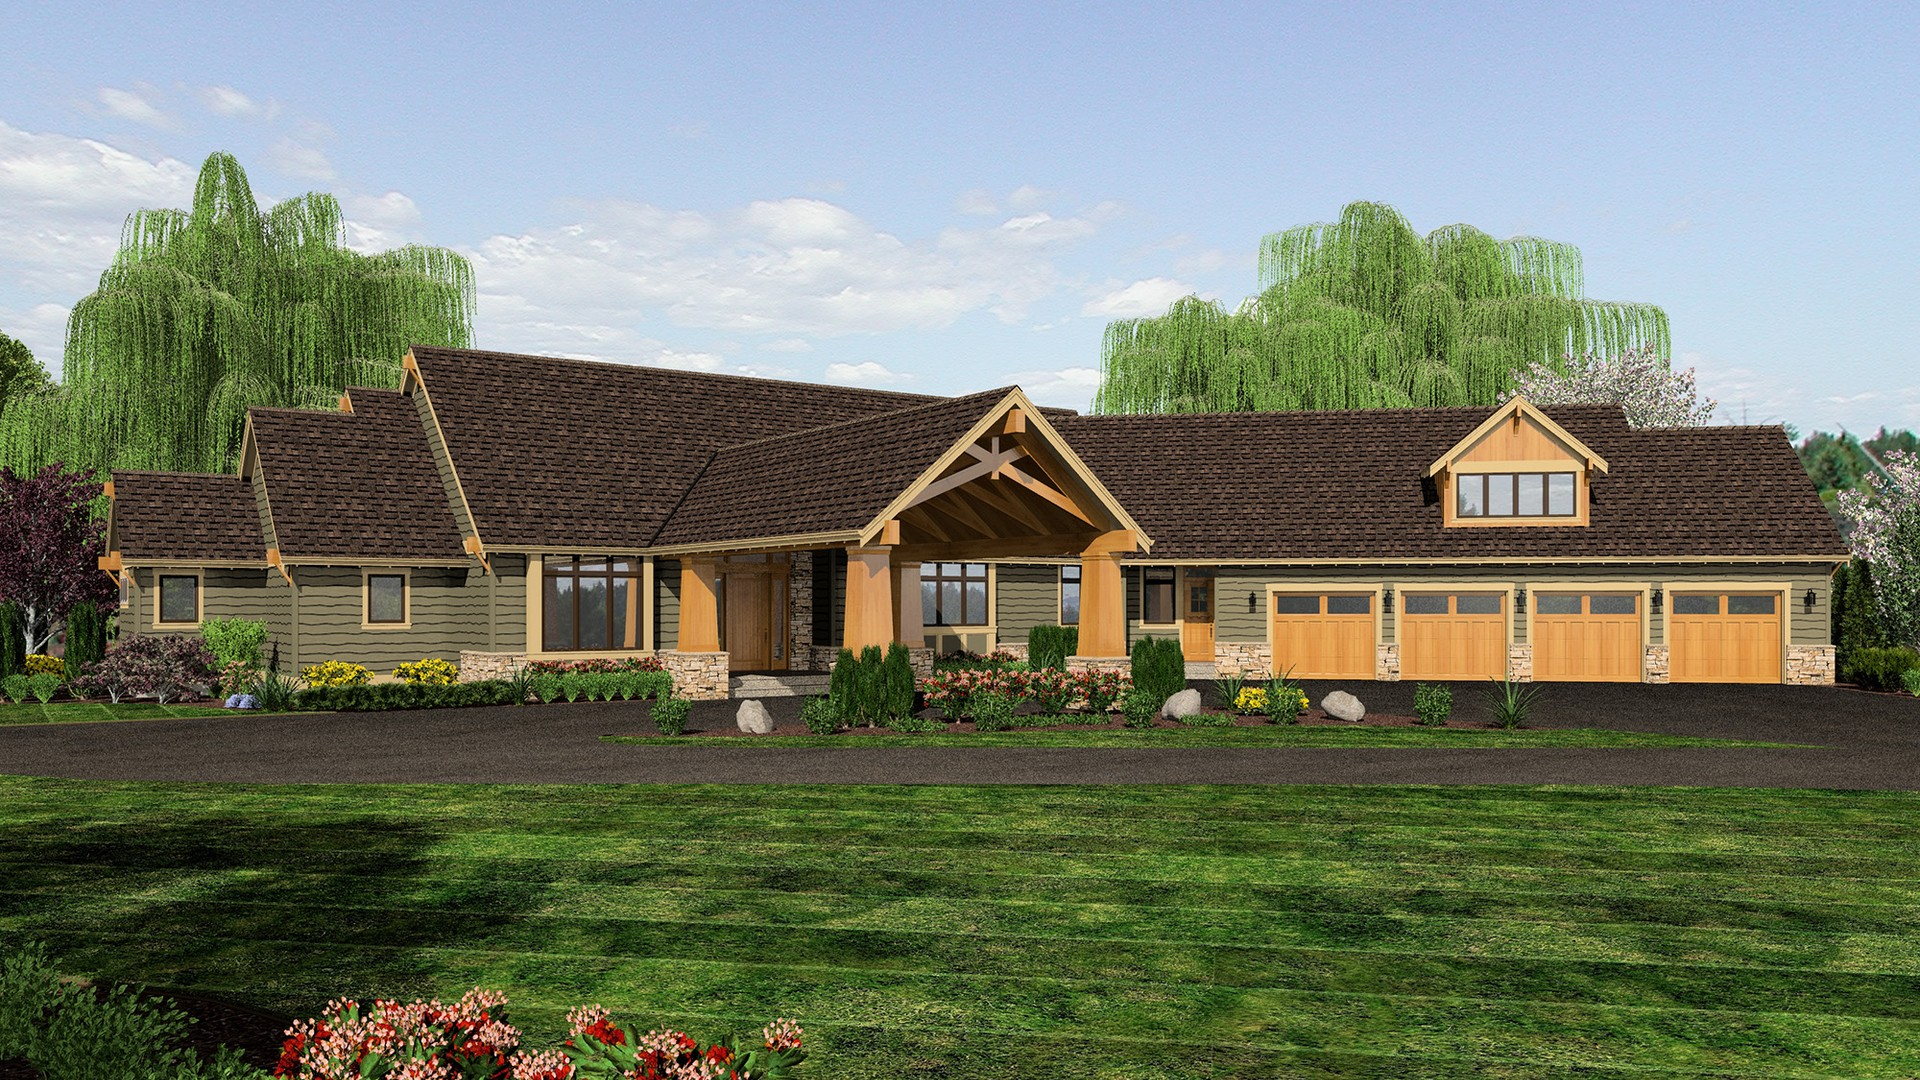 Craftsman house plan 2464 the manitoba 4339 sqft 4 for Manitoba house plans